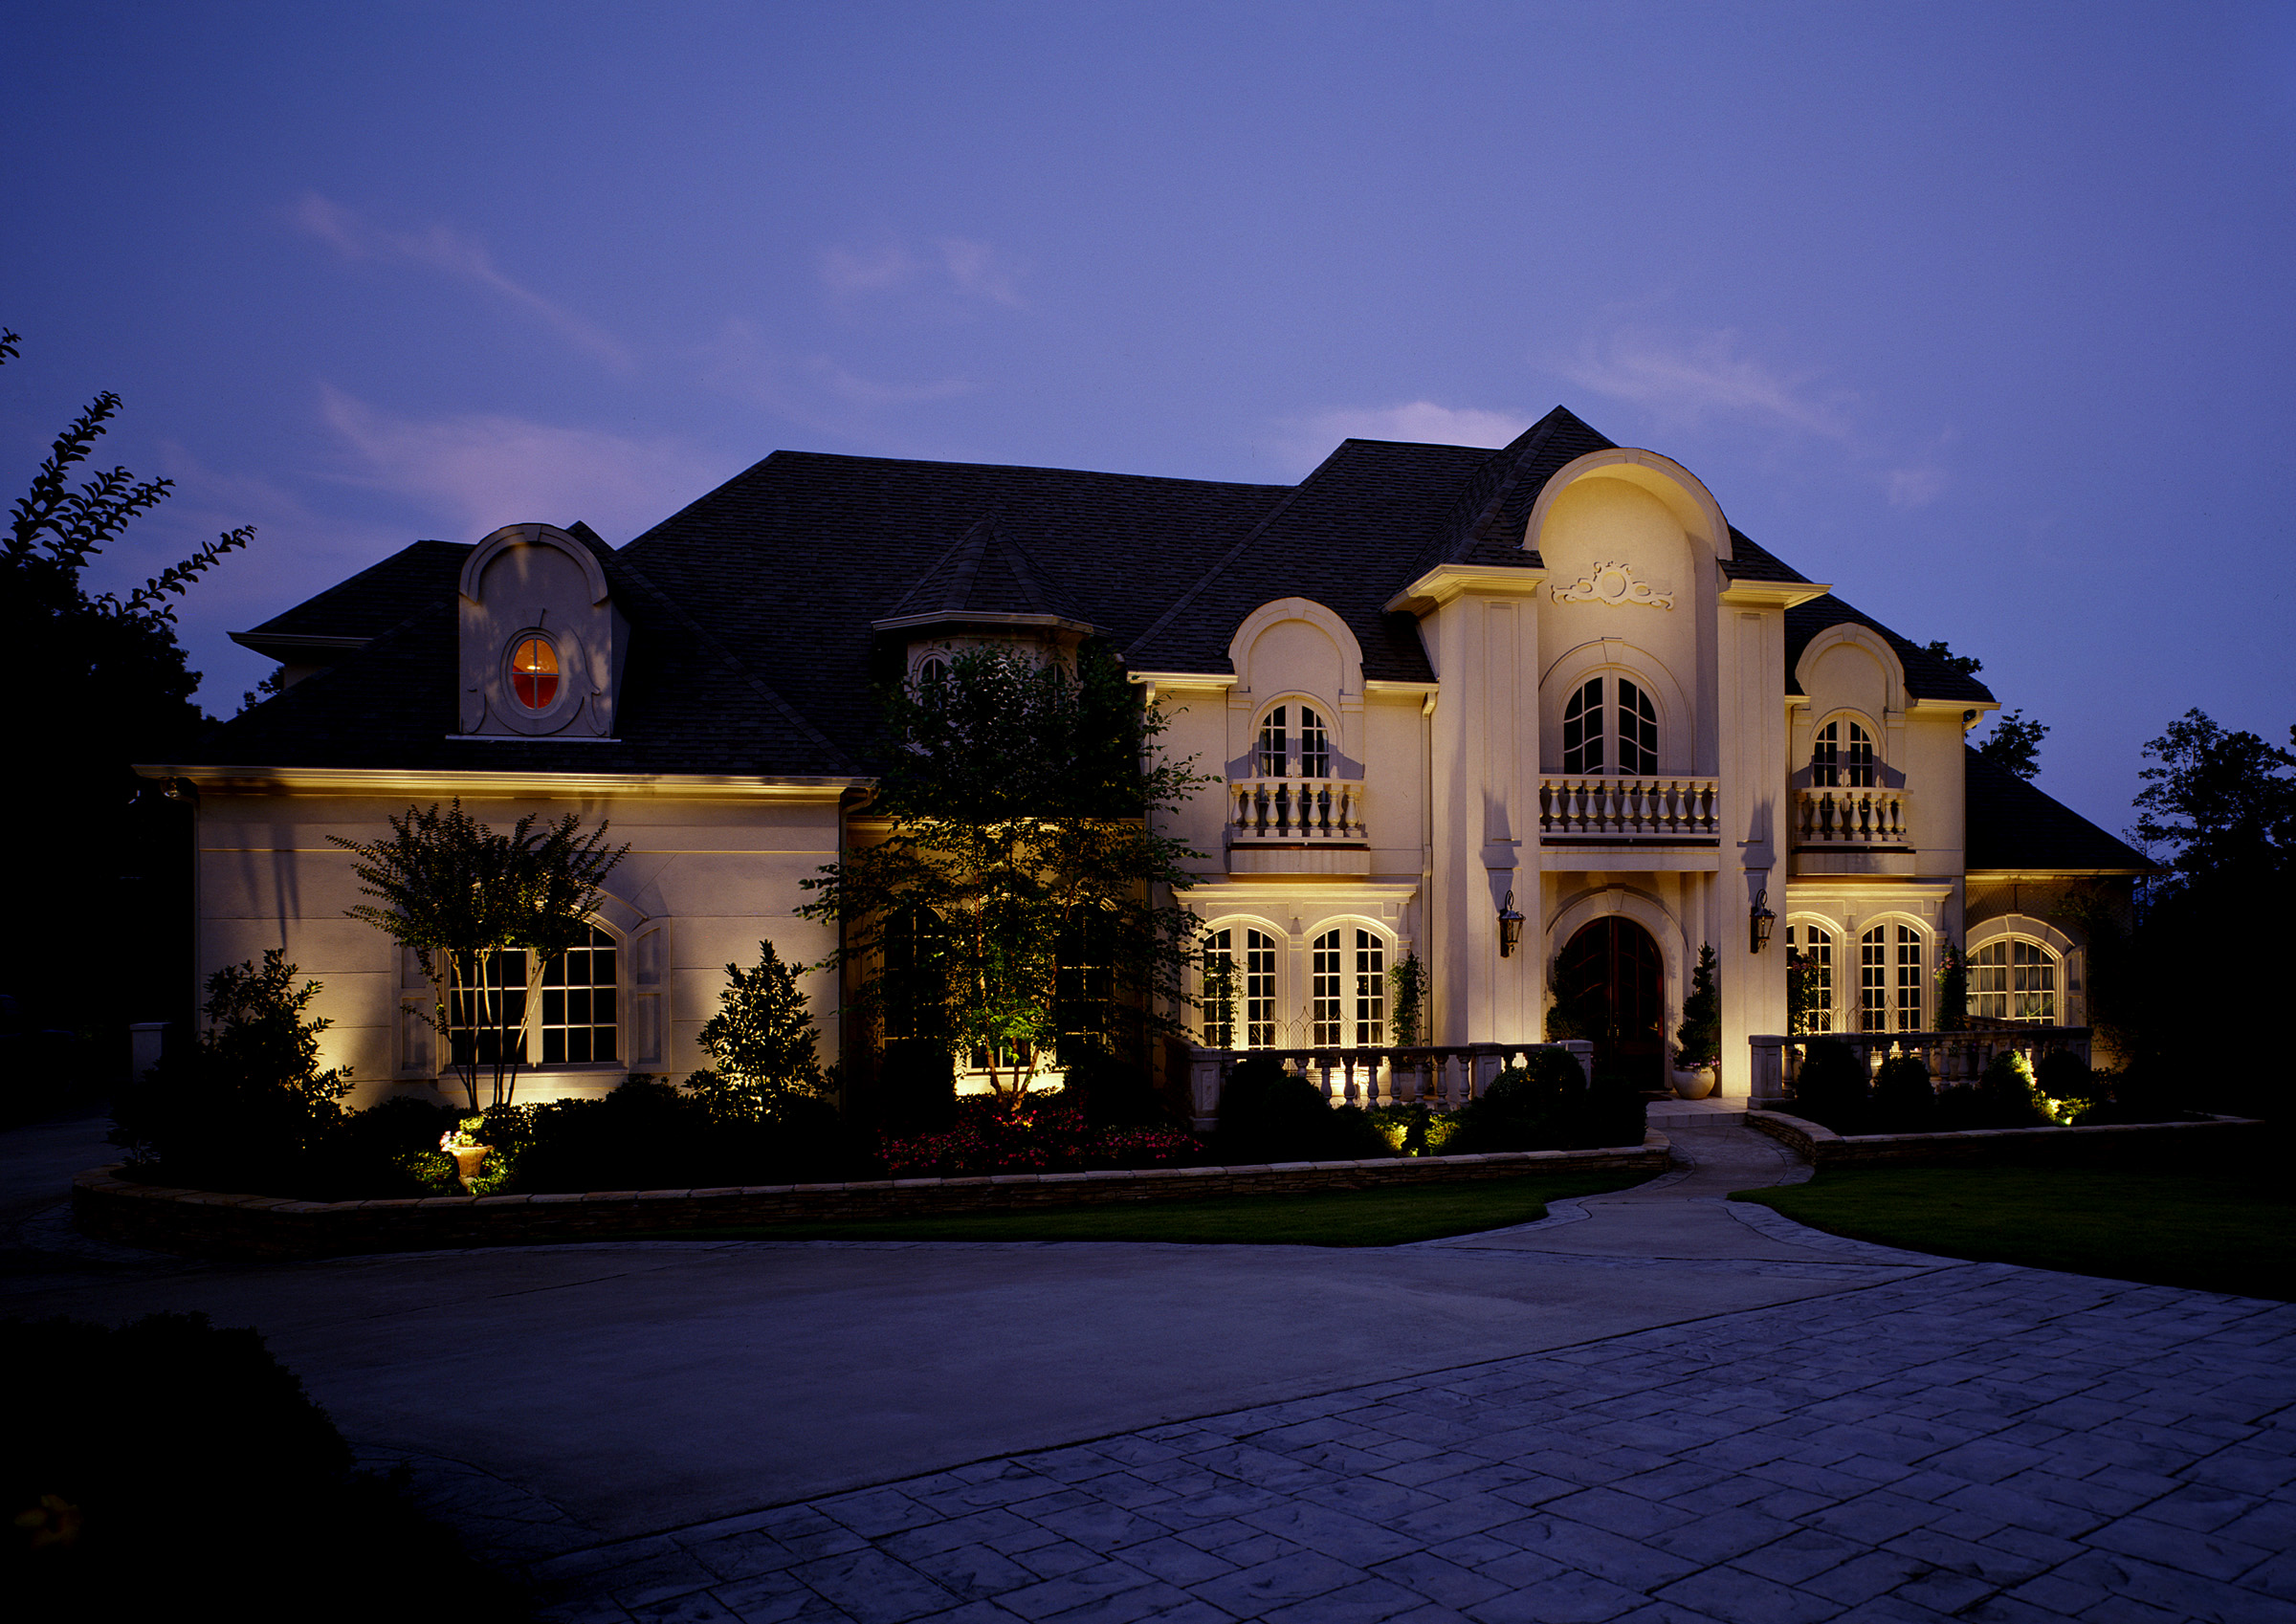 Outdoor Lighting Creates Class and Elegance. This Mountain Brook, AL home comes to life at night with tasteful architectural lighting. The numerous features are accented with strategically placed well lights.